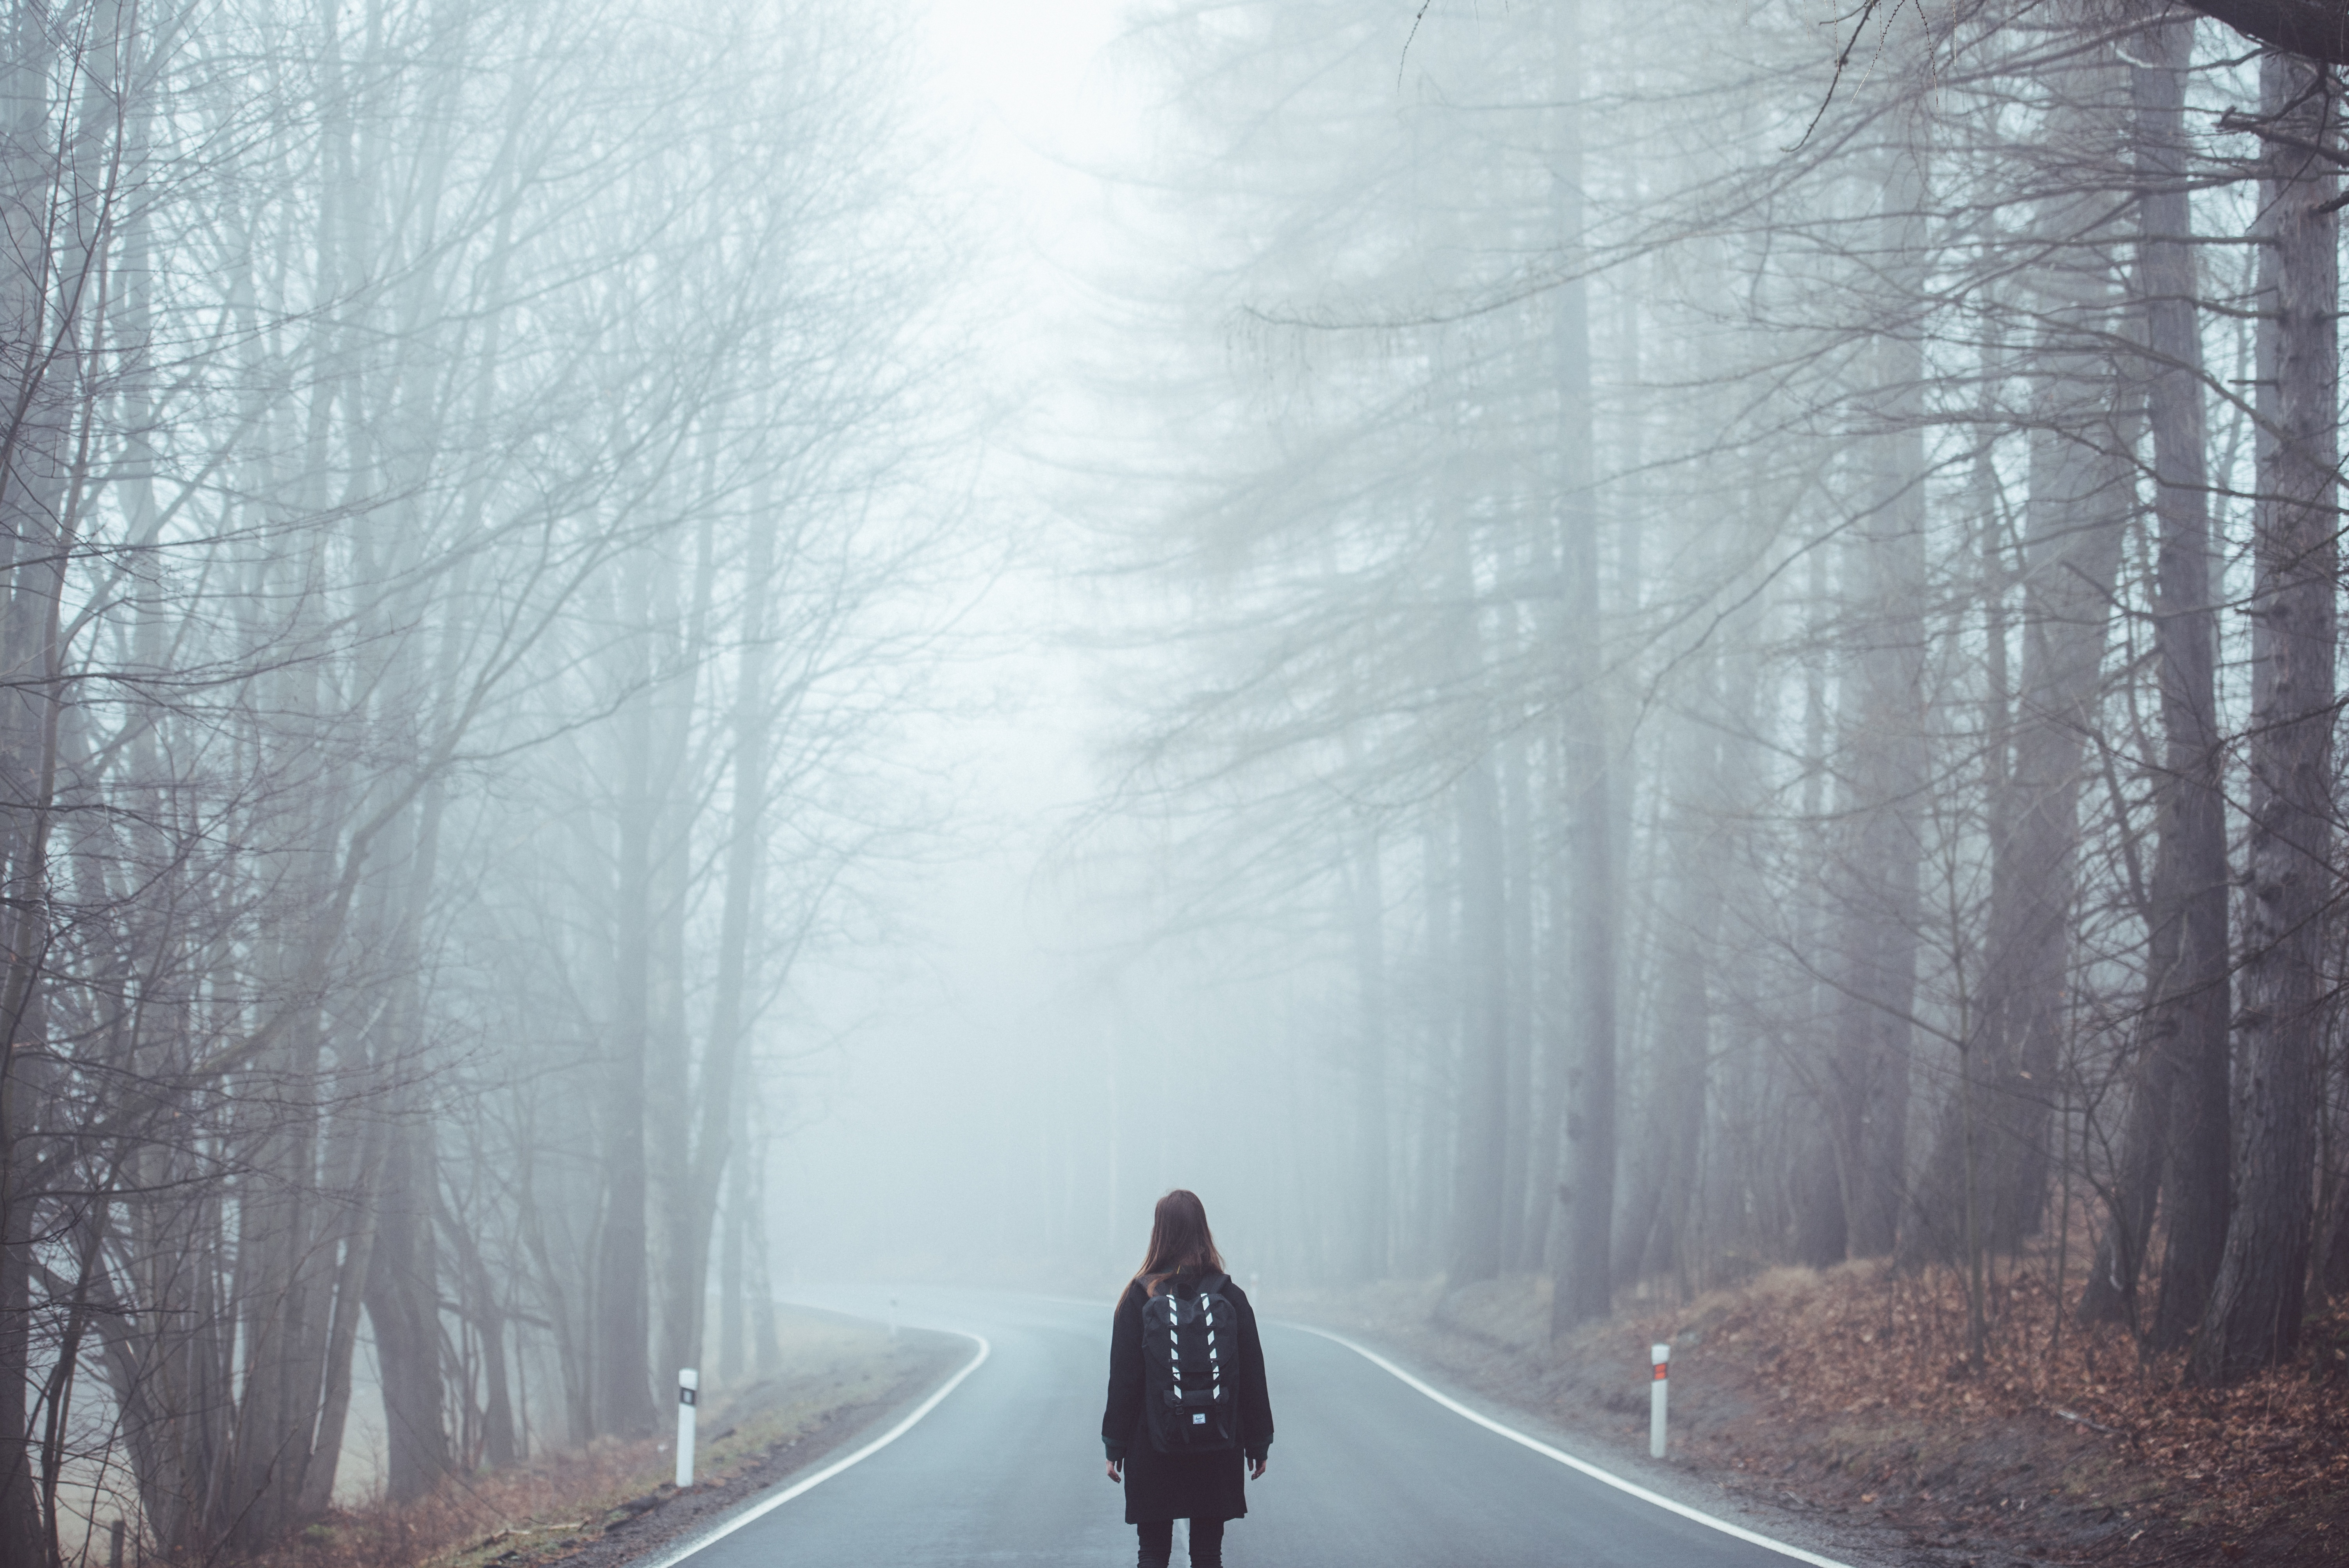 woman-alone-on-road